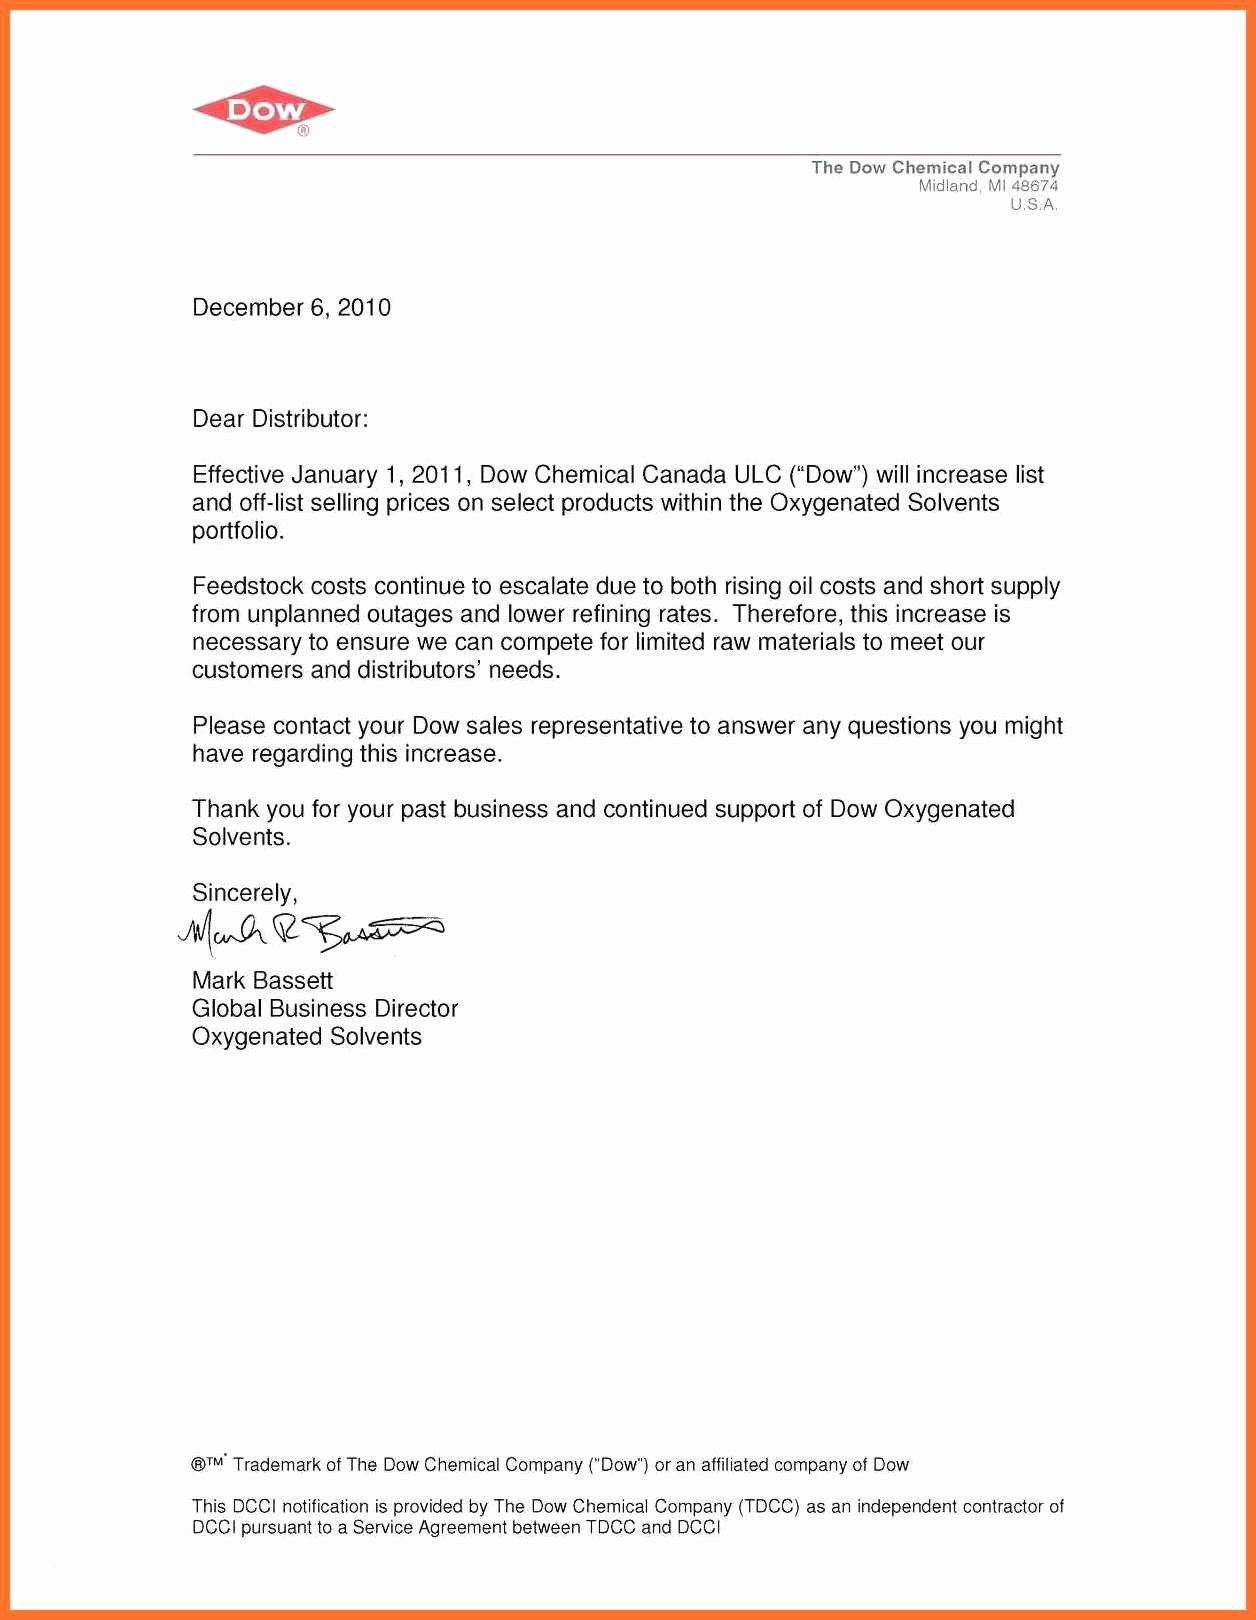 Rent Increase Letter Templates Awesome 9 10 Price Increase Letter to Customers